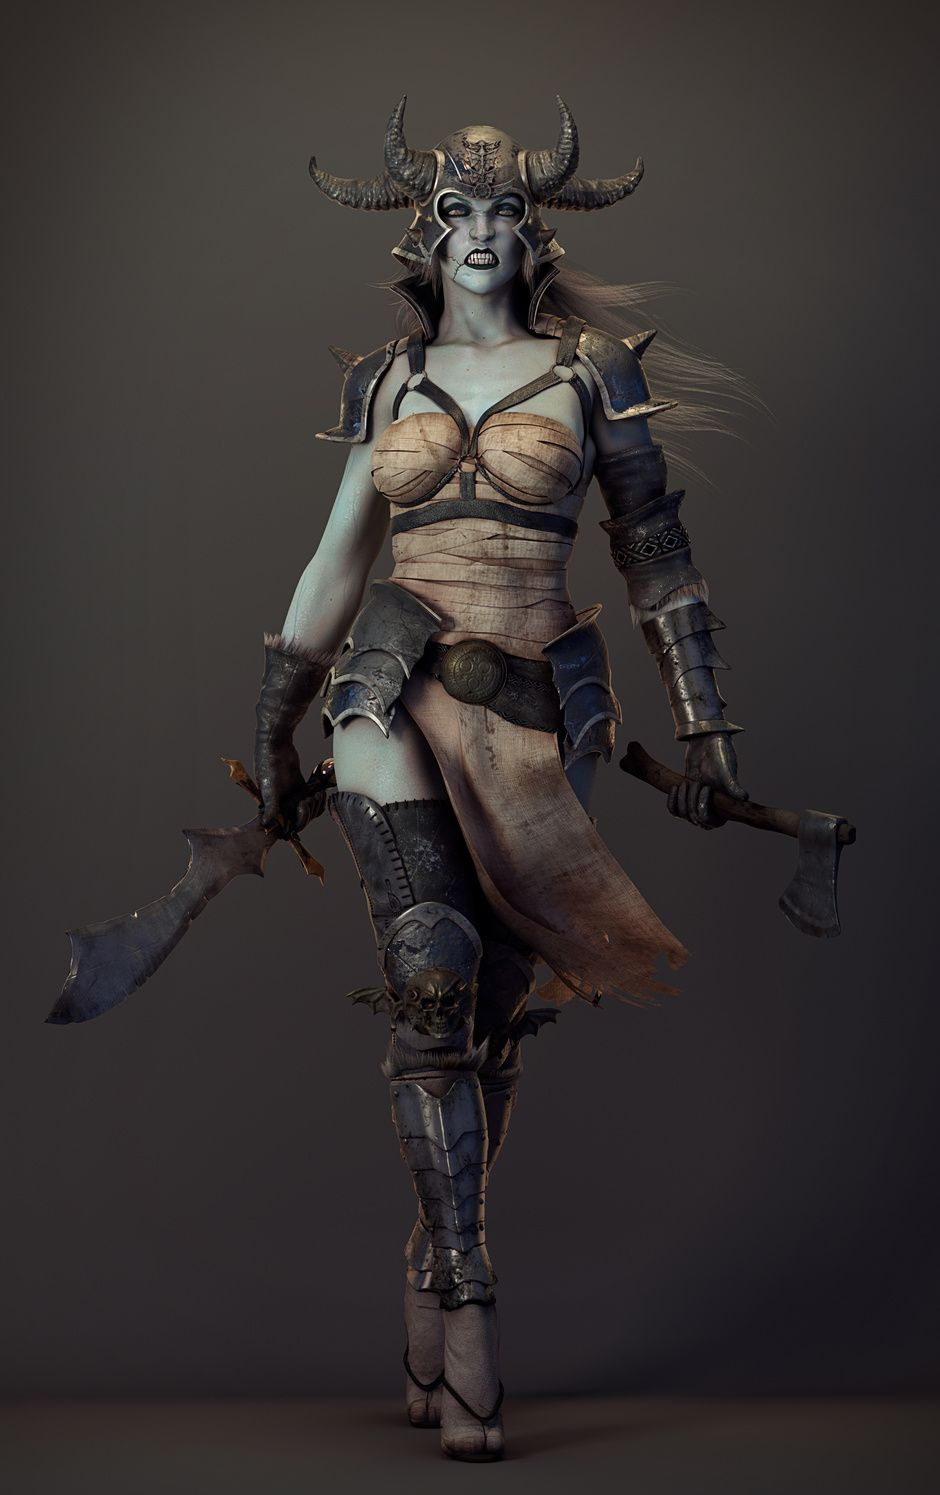 Character Design Zbrush Course : Demonic warrior by omar aweidah fantasy d cgsociety